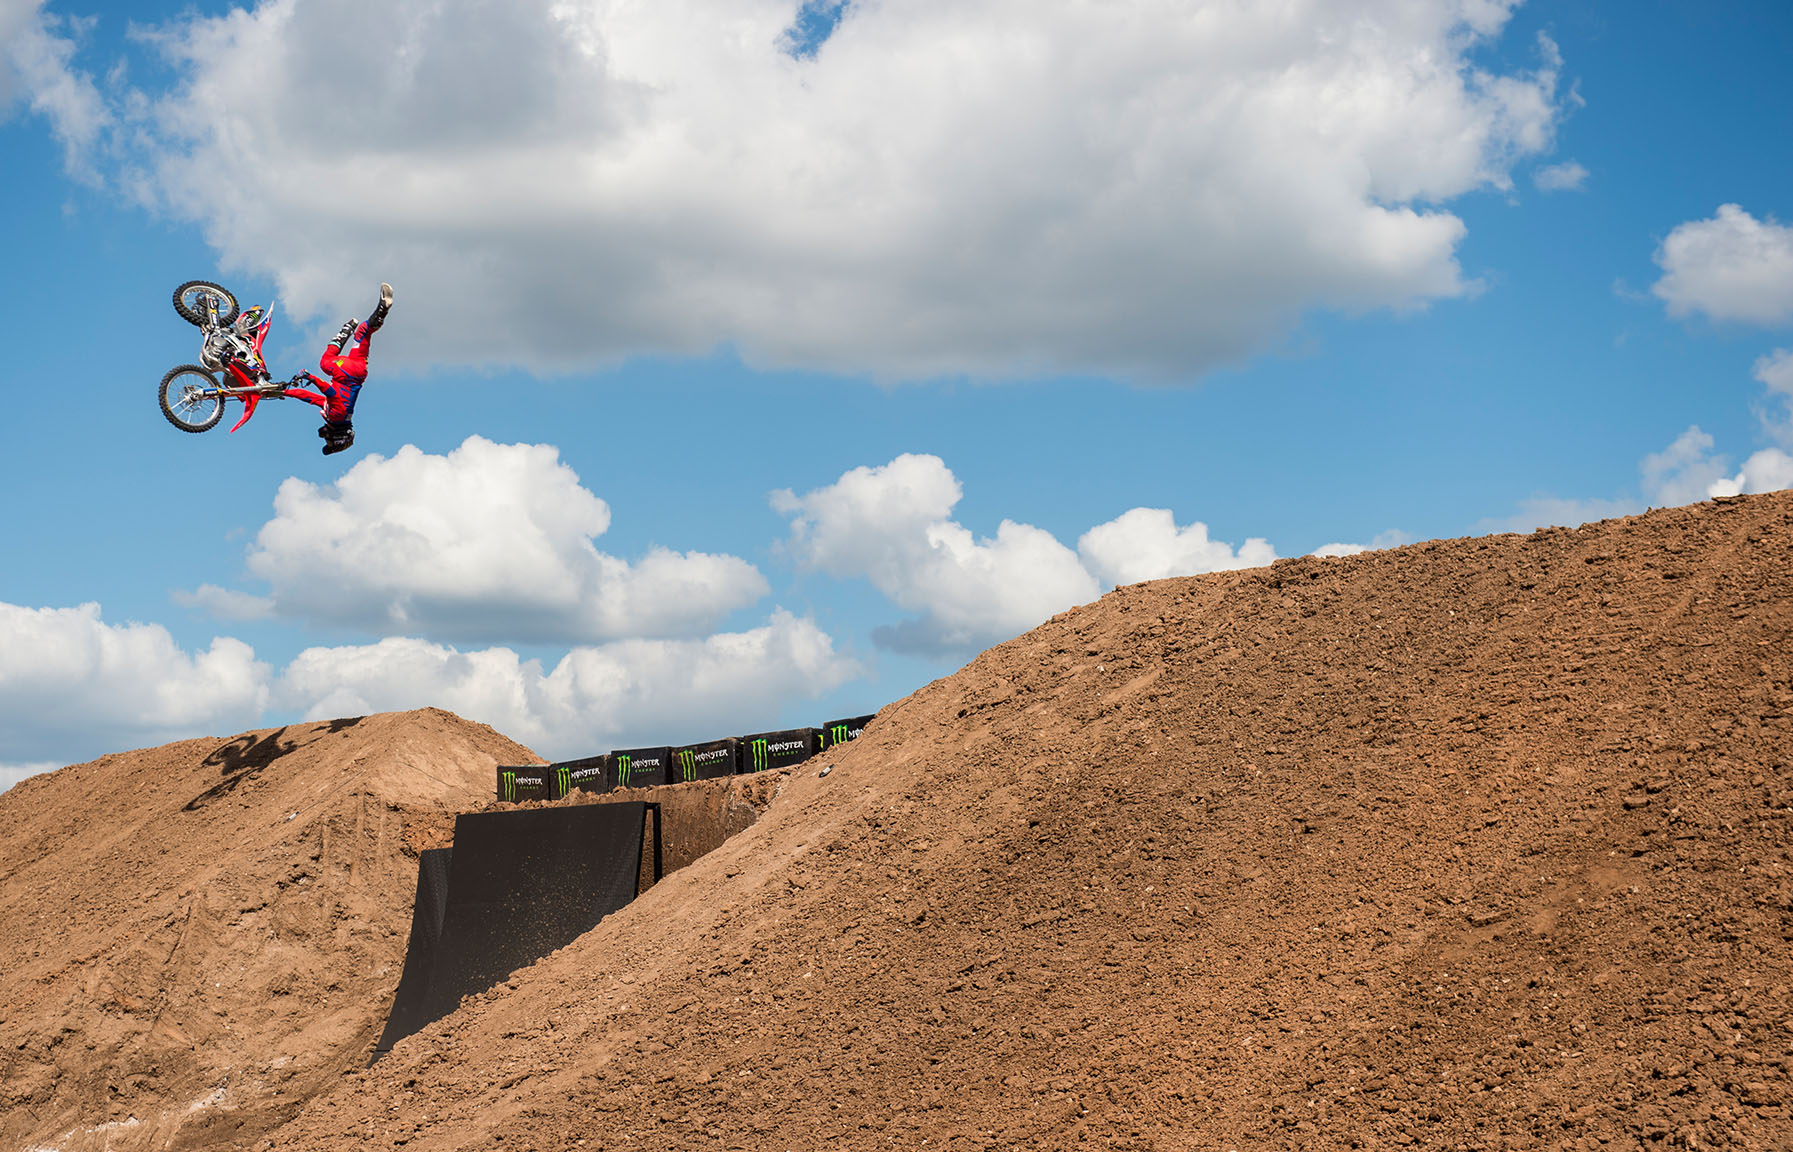 Australian Josh Sheehan, 29, took bronze in the debut of Moto X QuarterPipe on Sunday. In April, Sheehan landed the first triple backflip in motocross history at Travis Pastrana's house in Maryland, but you weren't going to see the triple backflip here in Austin. Quarterpipe is fairly new in freestyle motocross, but we've got some massive tricks, says Sheehan.